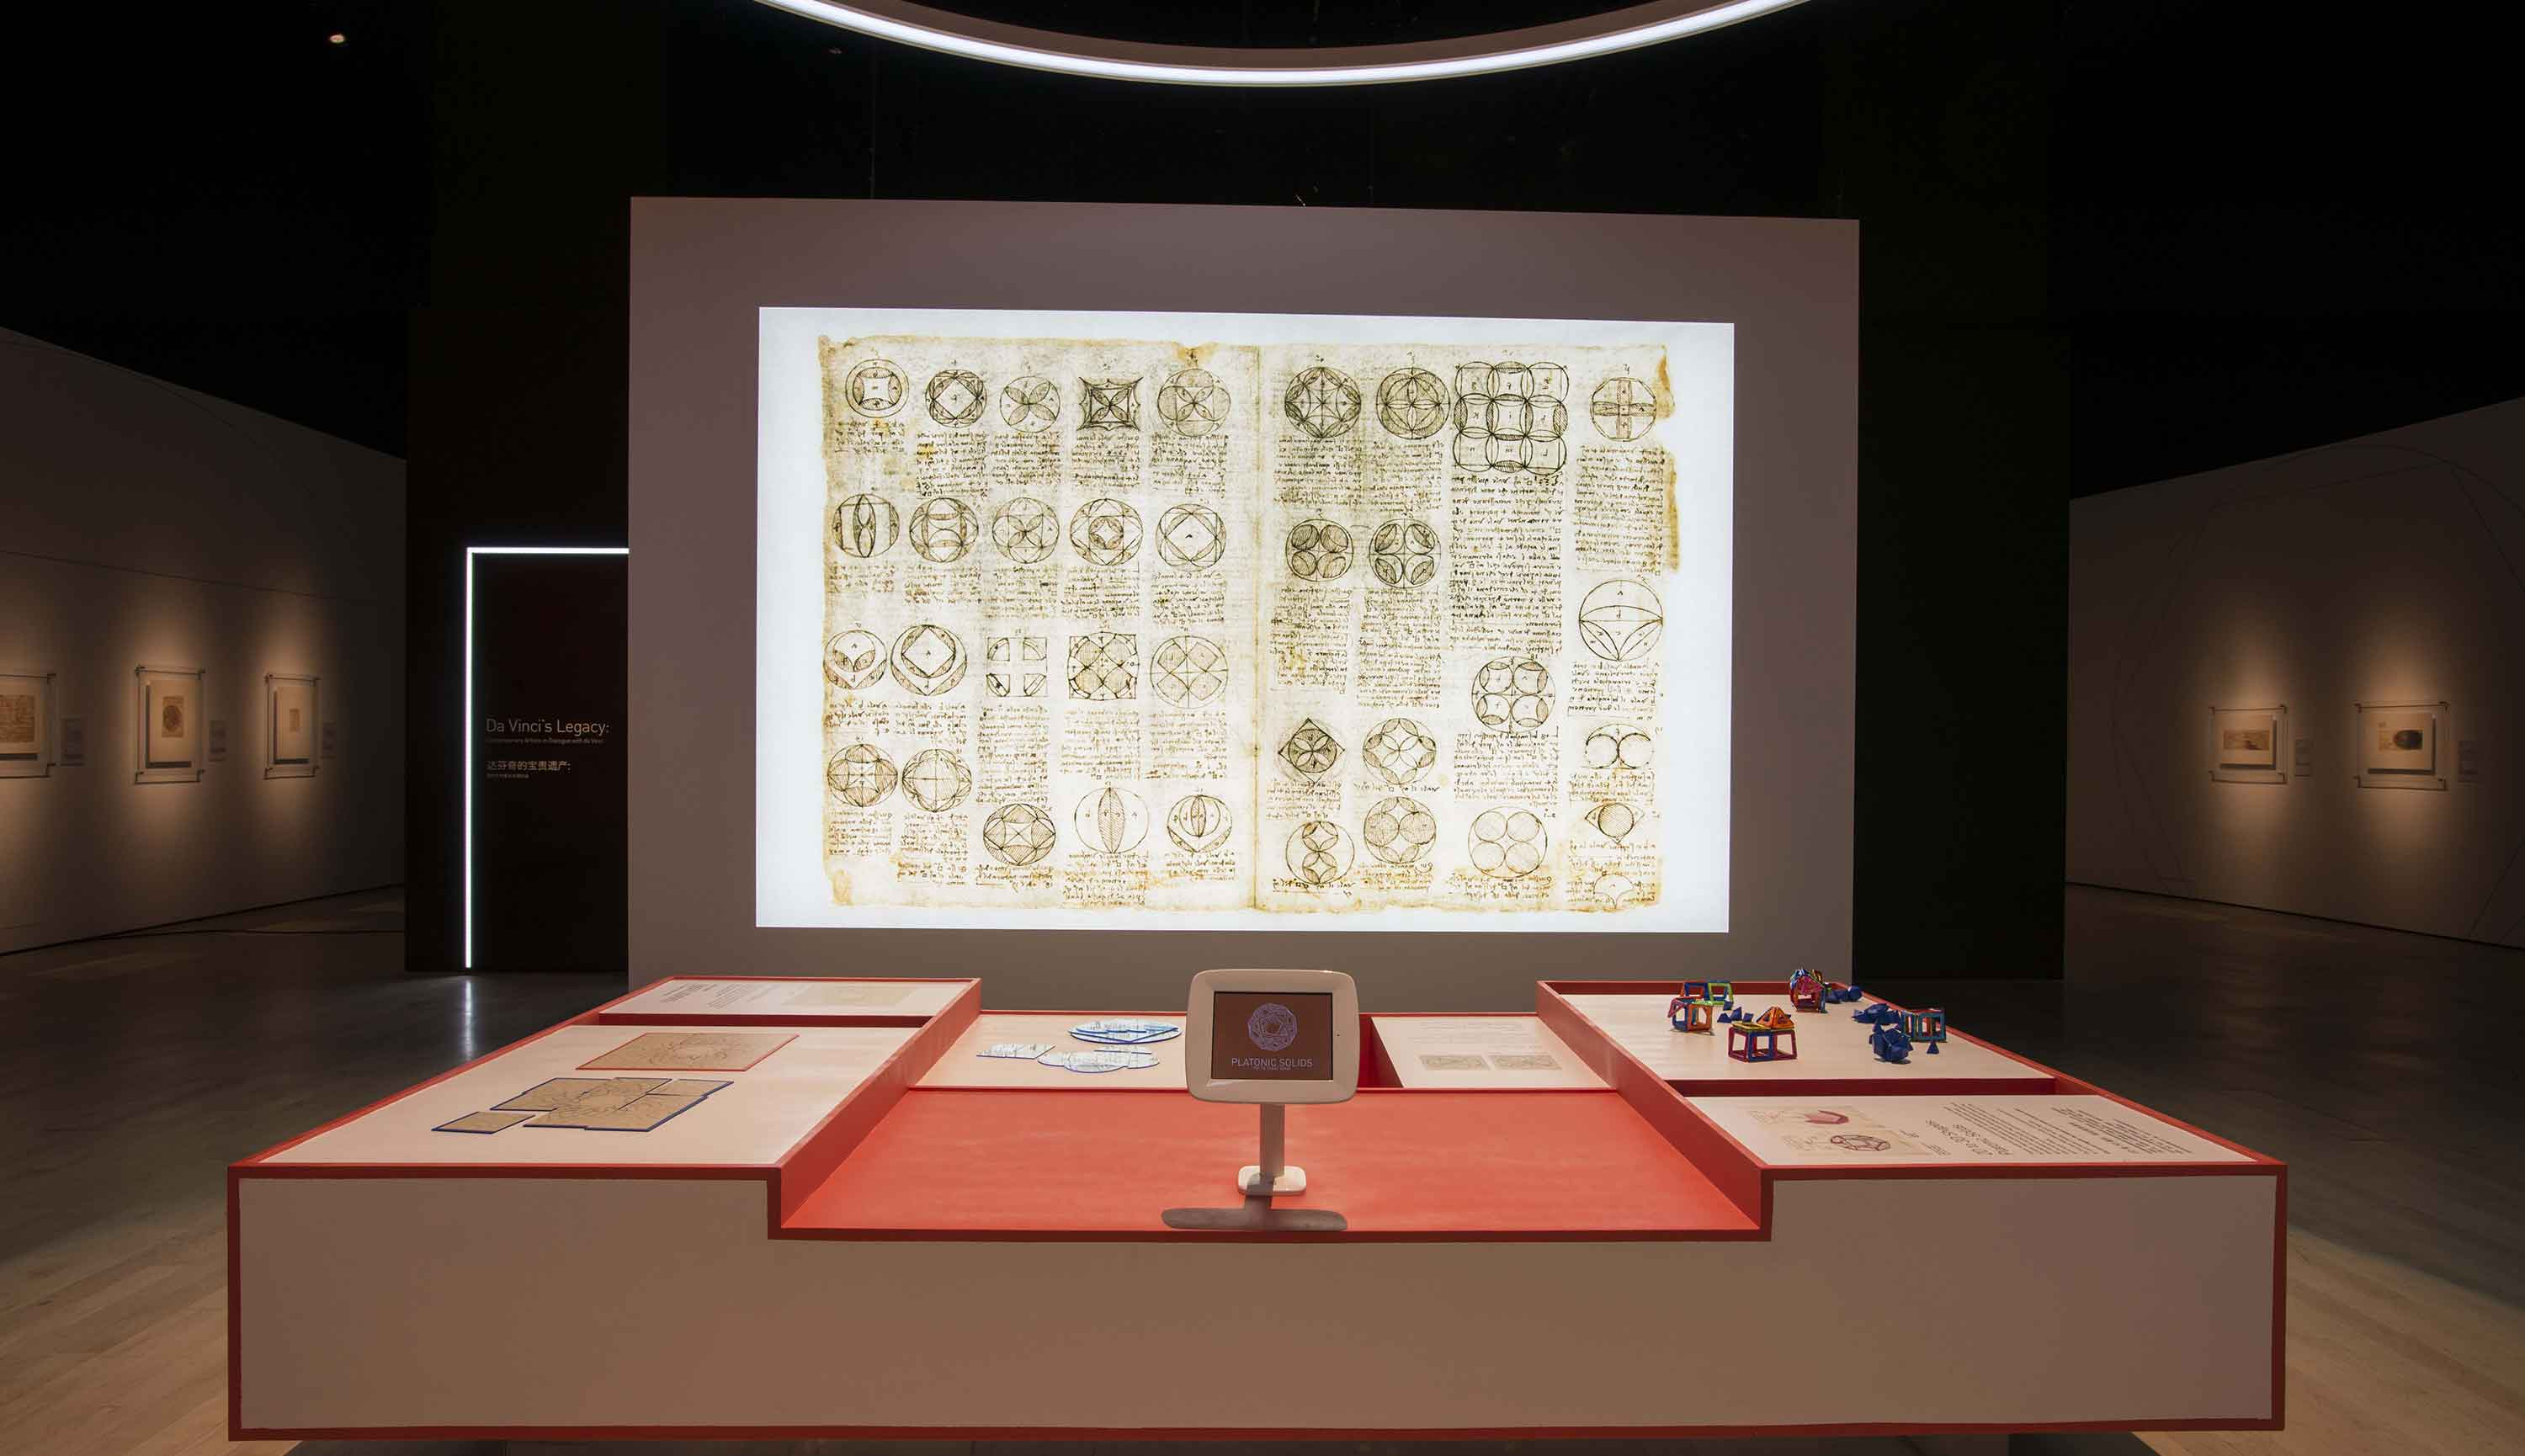 Da Vinci Mathematics Exhibit Gallery Image